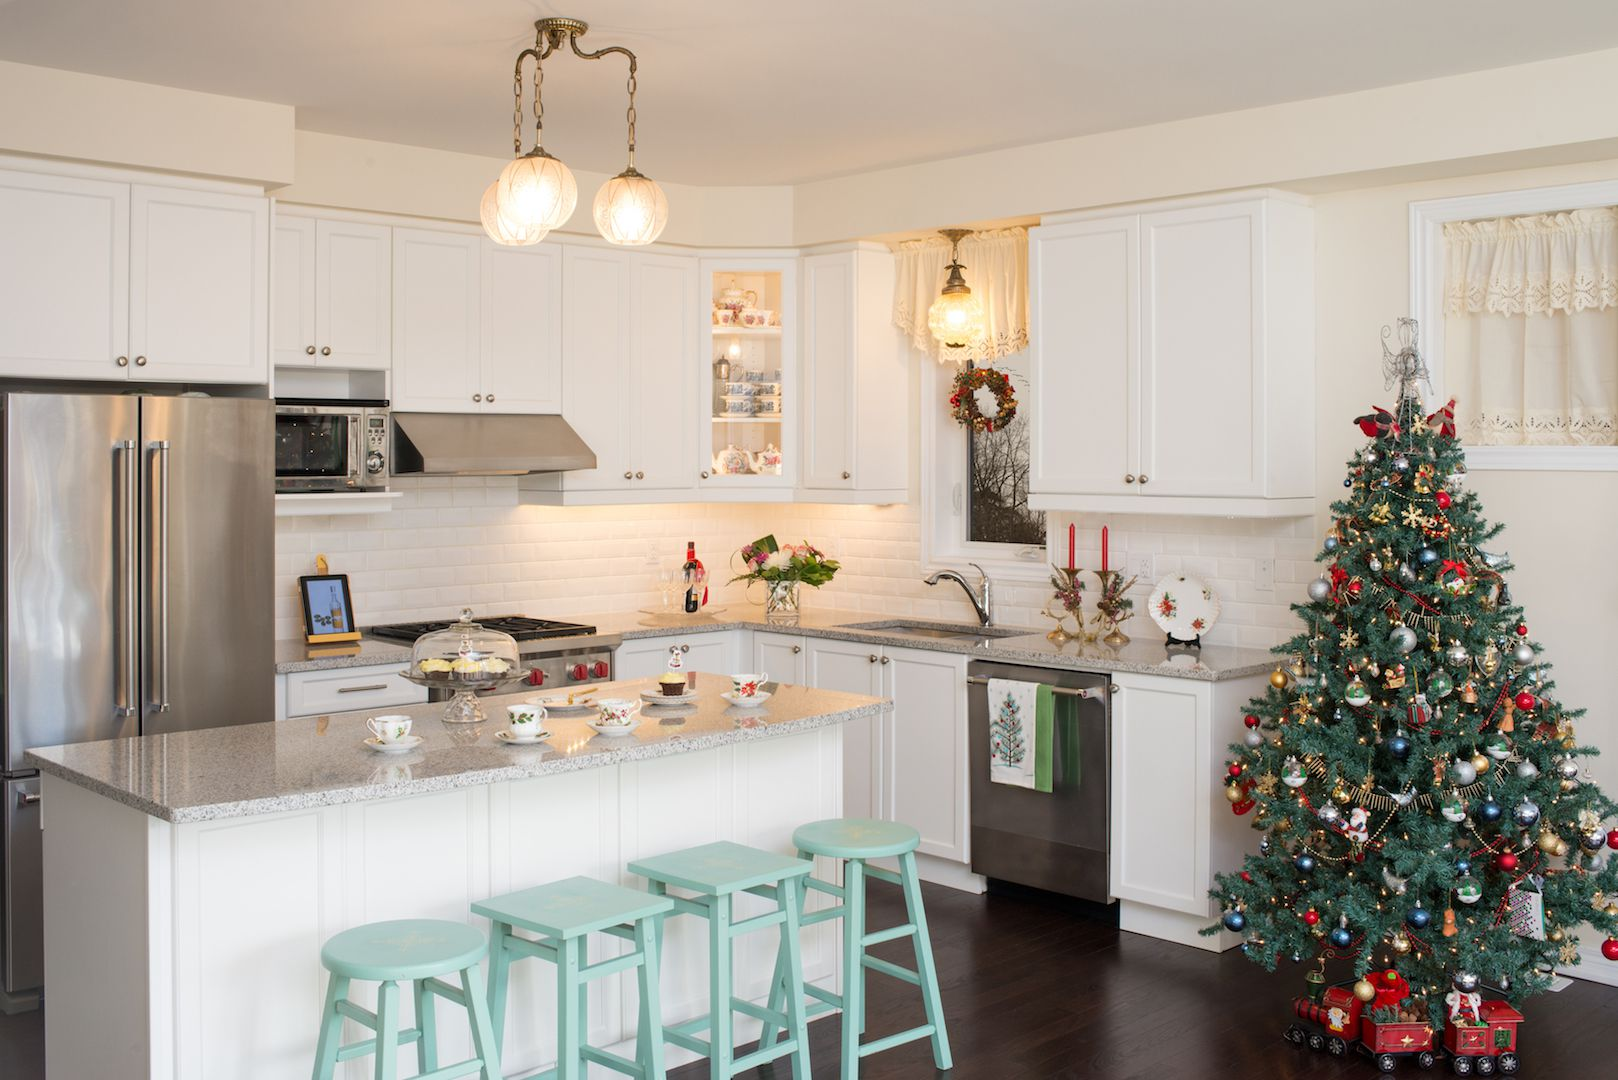 15 Christmas Kitchen Decor Ideas - How to Decorate Your Kitchen for